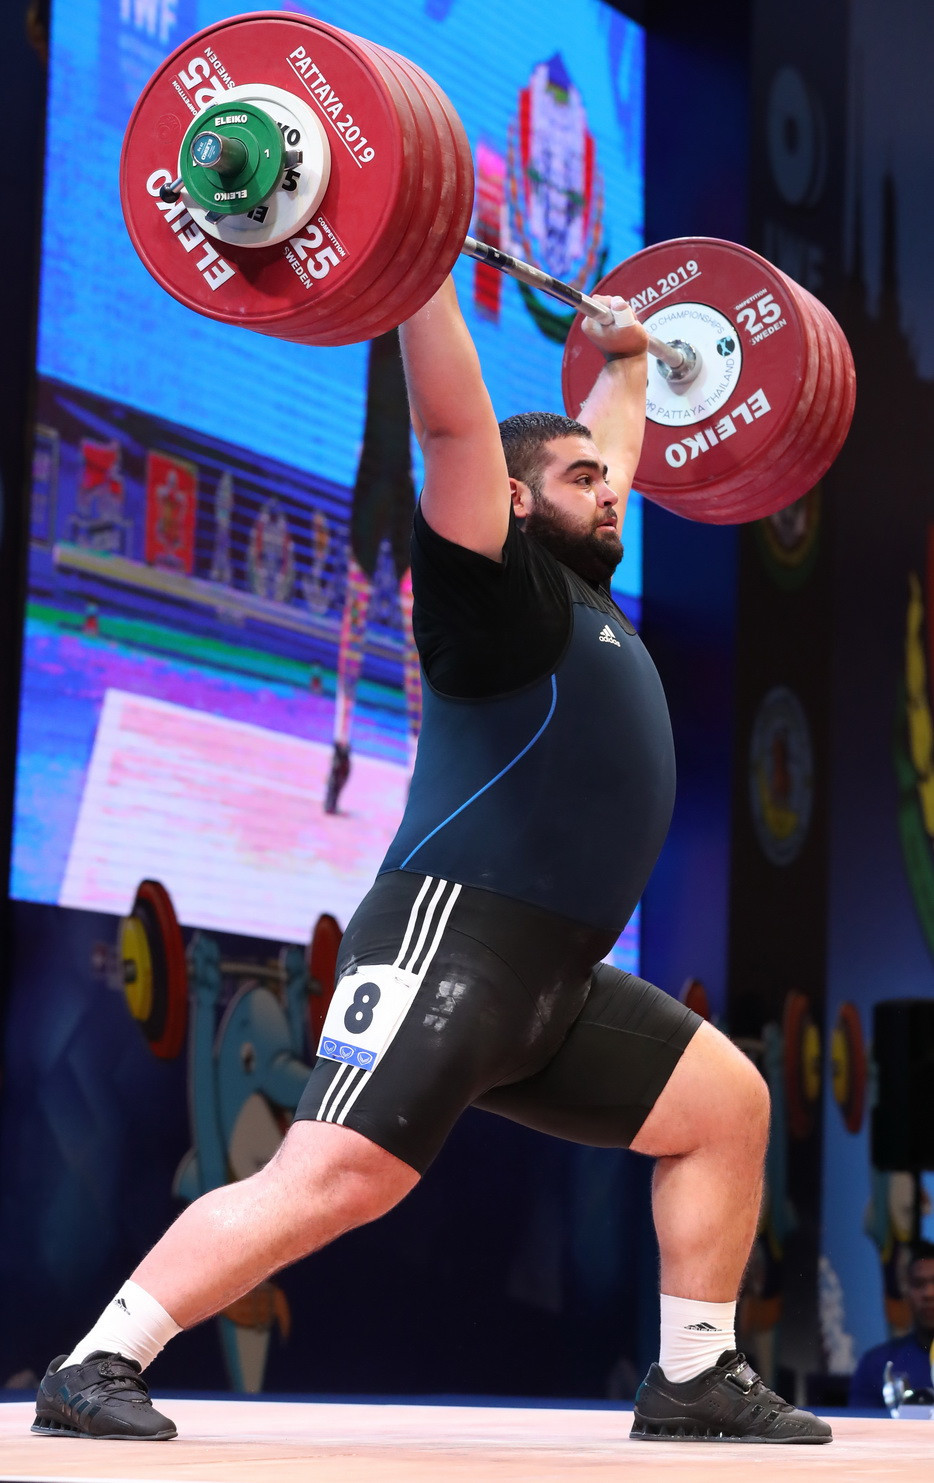 Armenia's Gor Minasyan had to settle for all three silver medals ©IWF